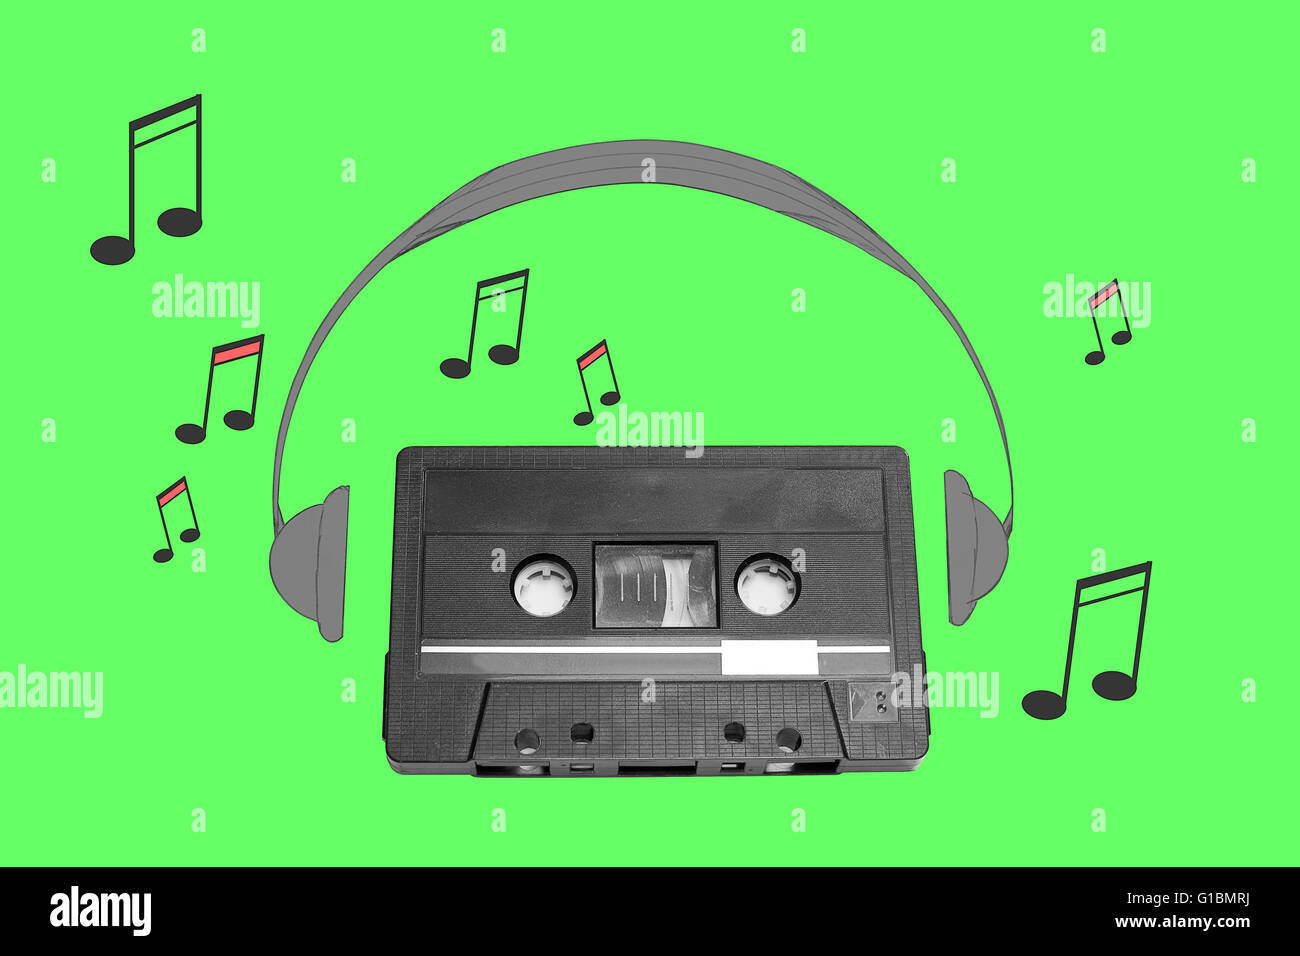 Audiotape and headphone draw on green background - Stock Image